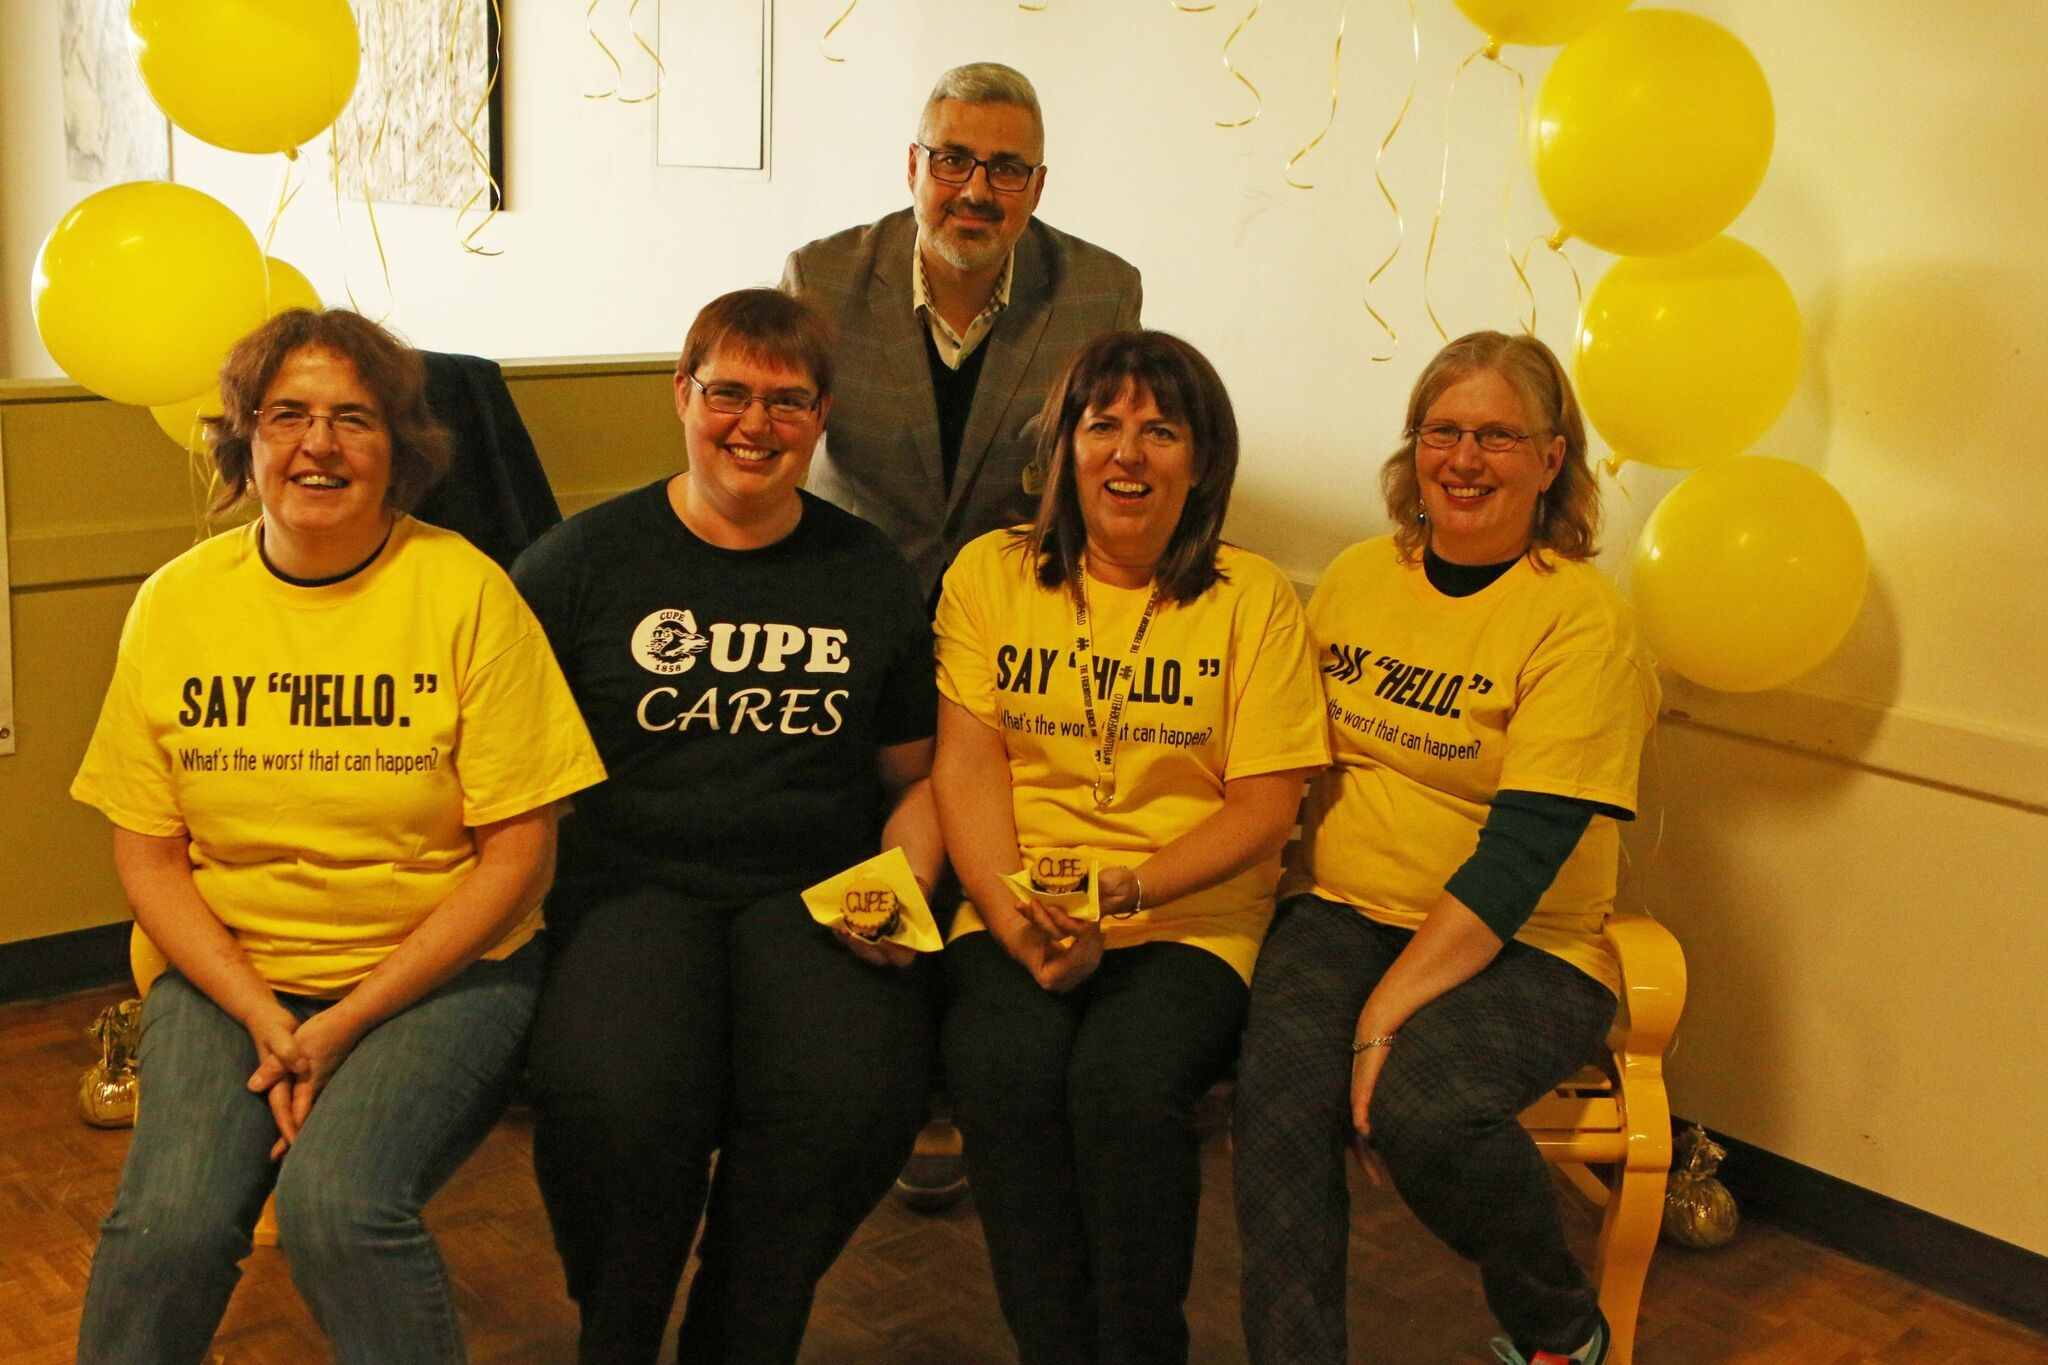 CUPE 1858 members raised funds for a friendship bench at VIU as a legacy project. Pictured (L–R) are CUPE 1858 executive members Bernie Heise, CUPE 1858 President Deborah Hopper, Shannon McKenzie and Annette Woolf, with Sam Fiorella, a co-founder of the project.